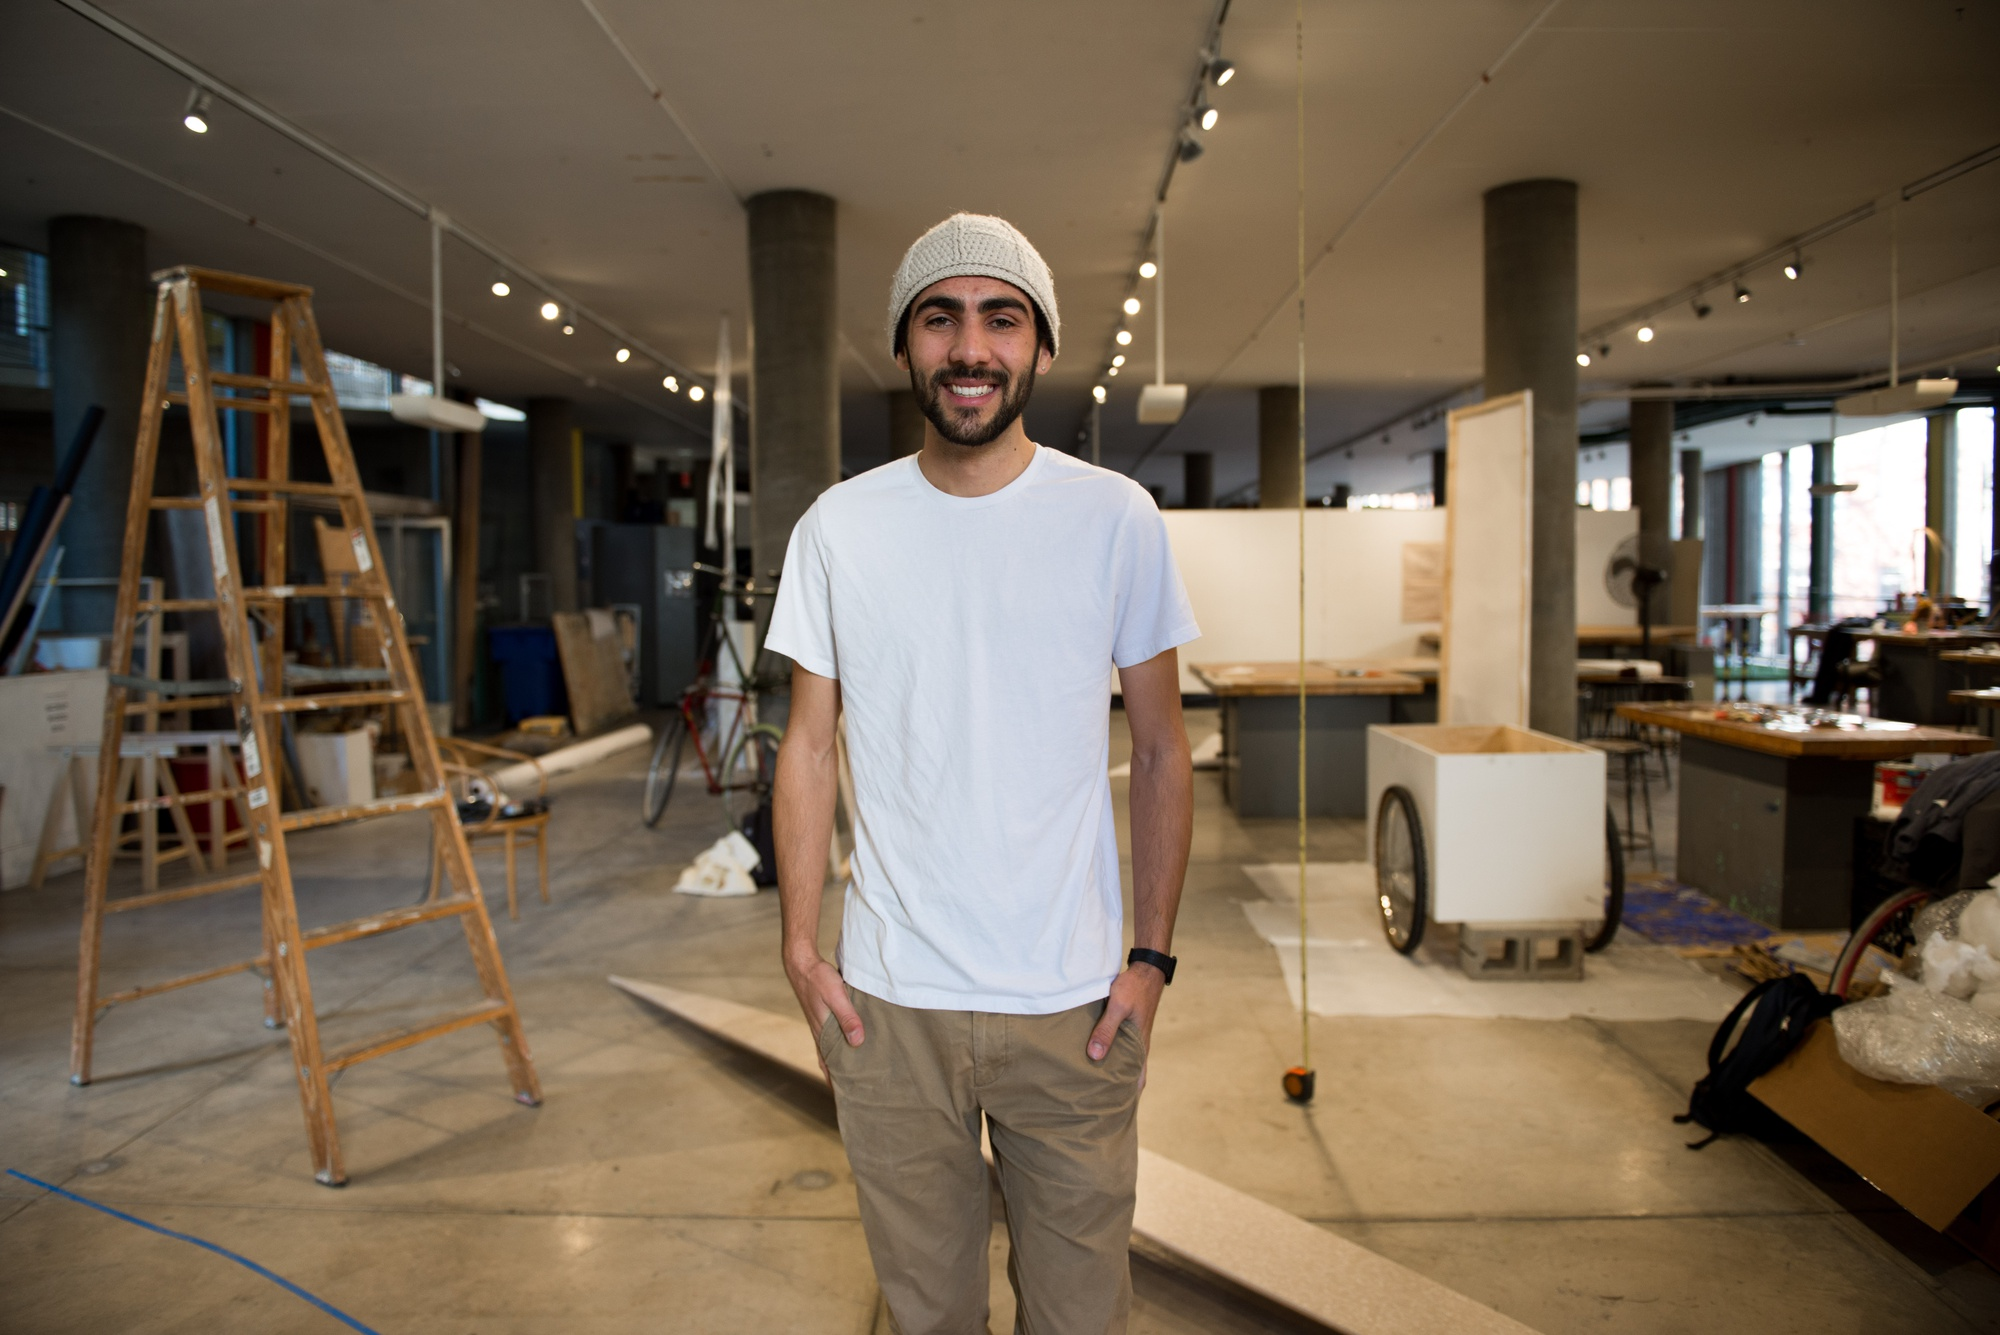 """Orman poses in front of his work area in the Carpenter Center, which is covered in his works-in-progress and completed sculptures. """"I used to take up the entire area,"""" said Orman, claiming he is """"basically an artist in residence."""""""